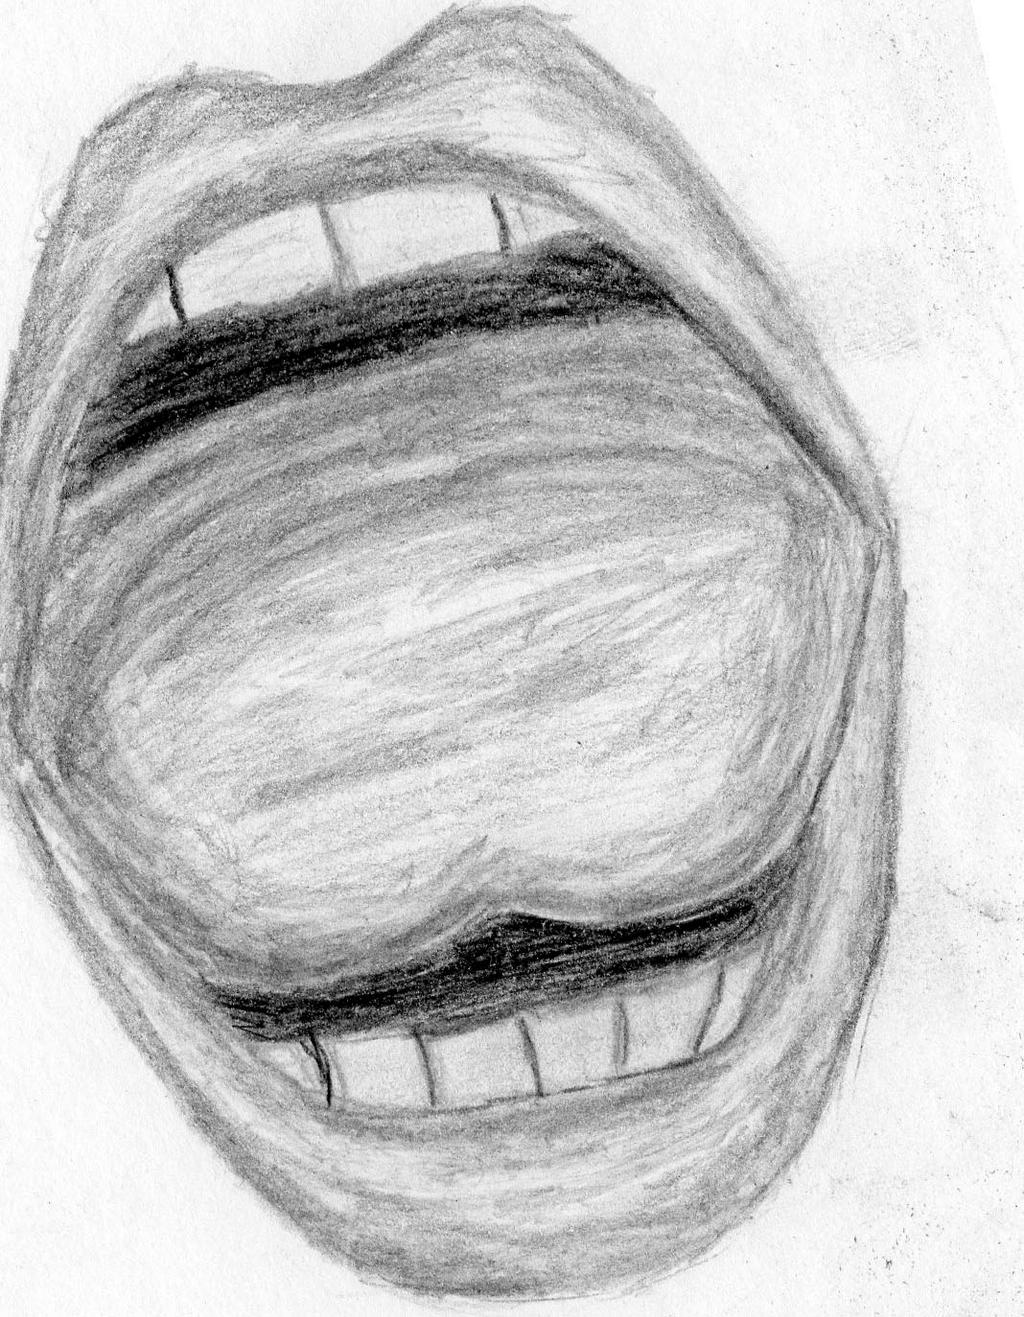 Pencil Drawing Of A Mouth by JurrellGraham on DeviantArt